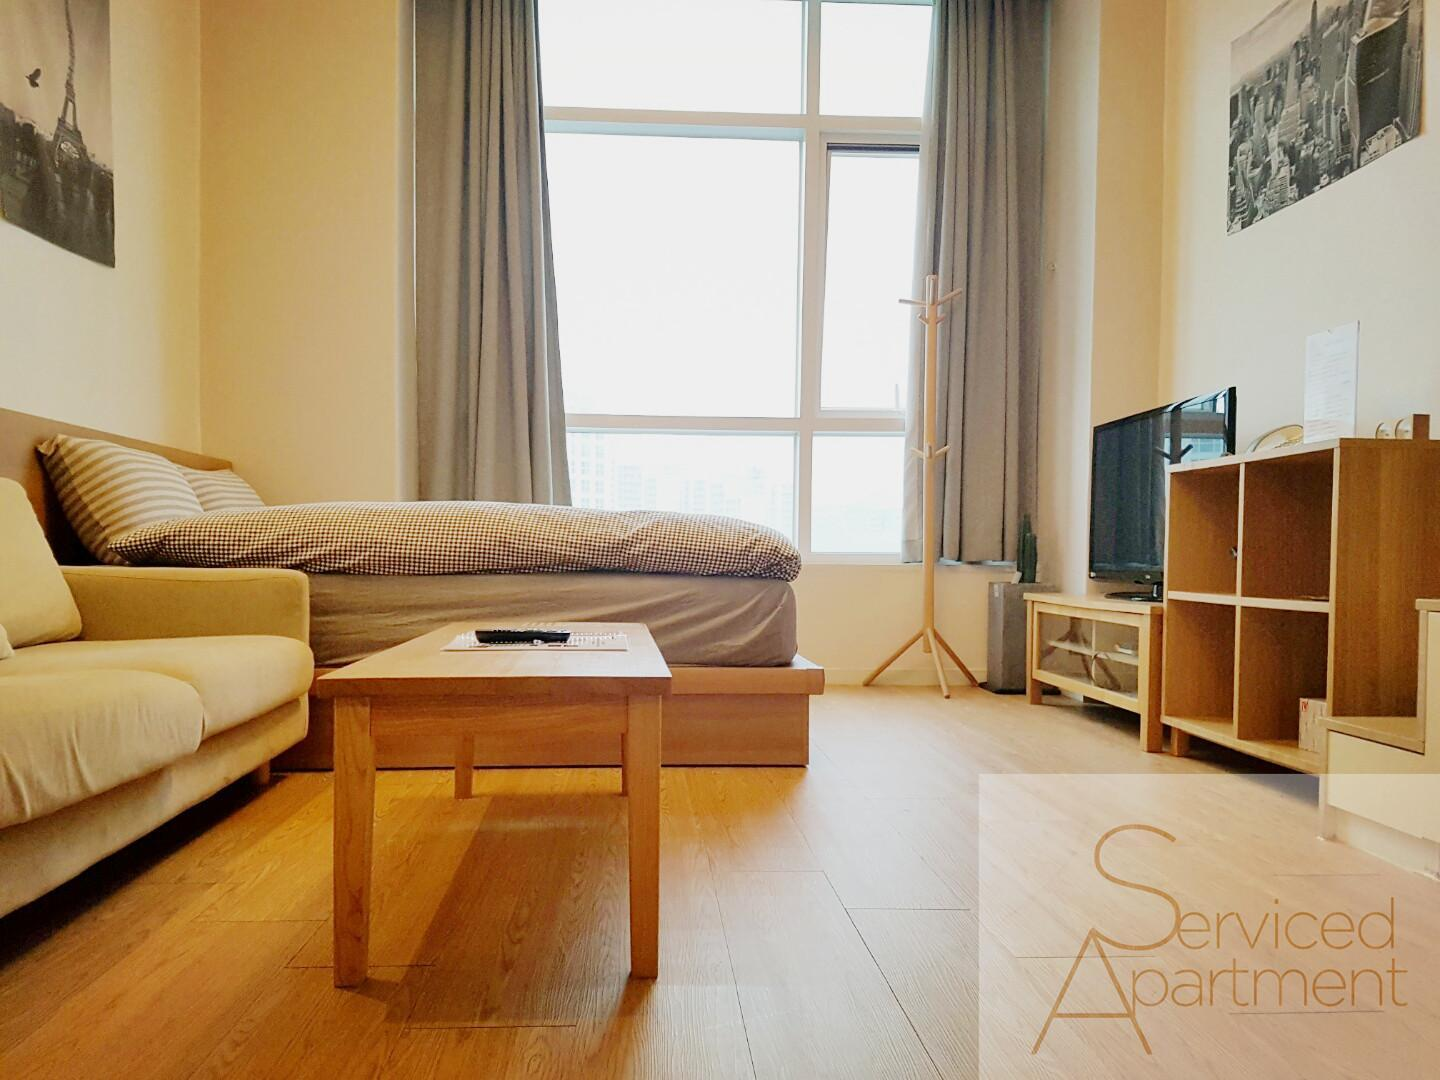 202 House Seoulstation Best Price On Serviced Apartment Seoul Station In Seoul Reviews